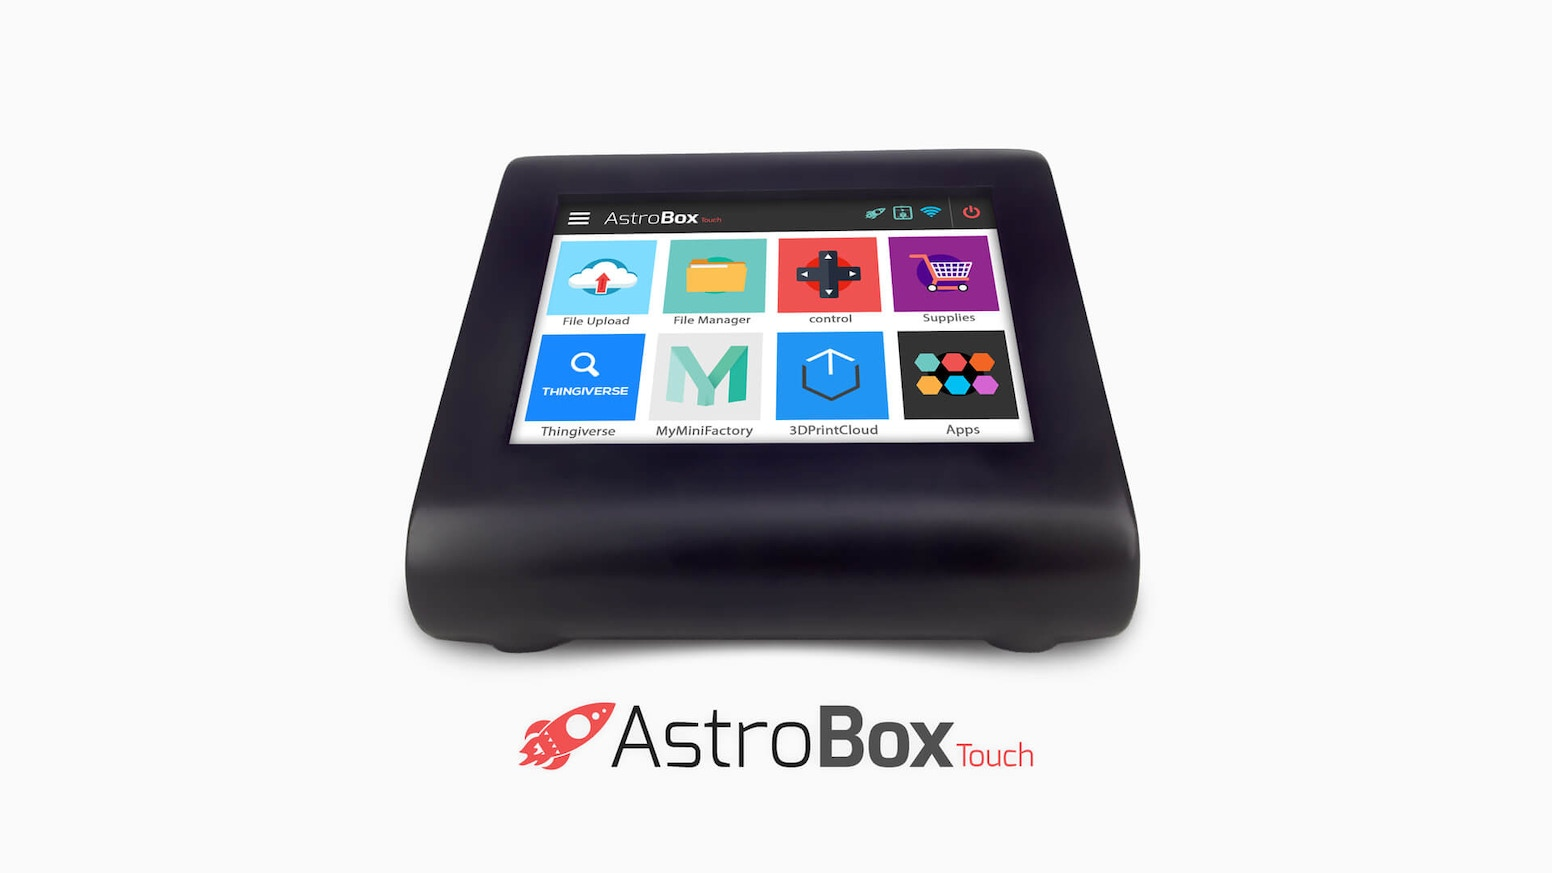 AstroBox Touch A Powerful Touchscreen For Your D Printer By - Abt ipad